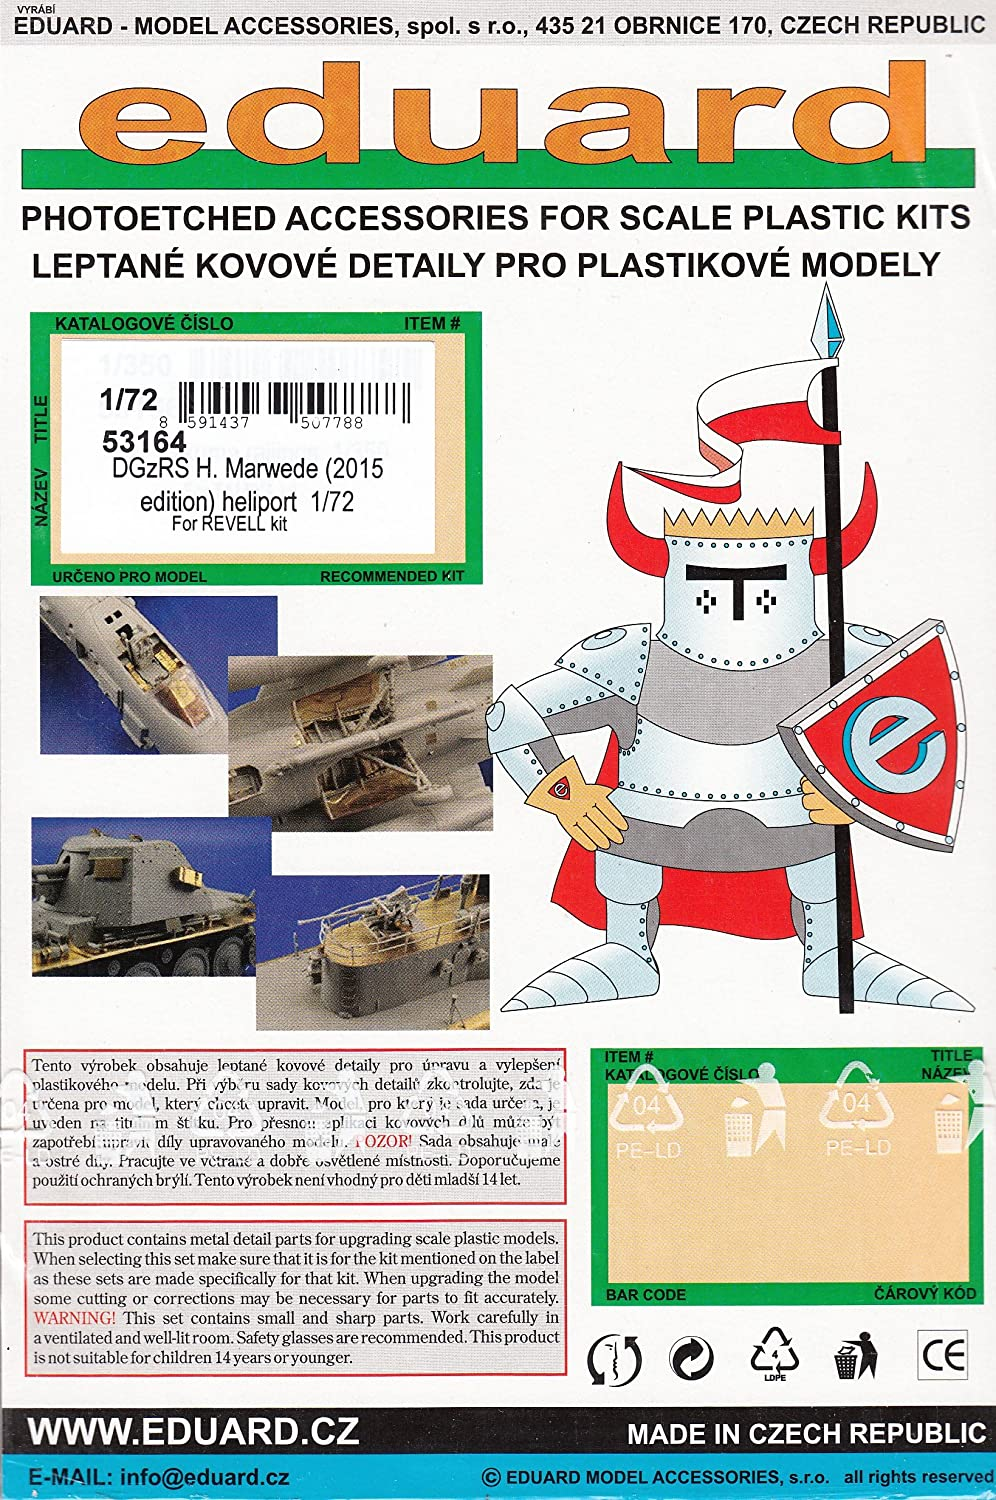 heliport f.R in 1:72 2015edition Eduard Accessories 53164 DGzRS H.Marwede